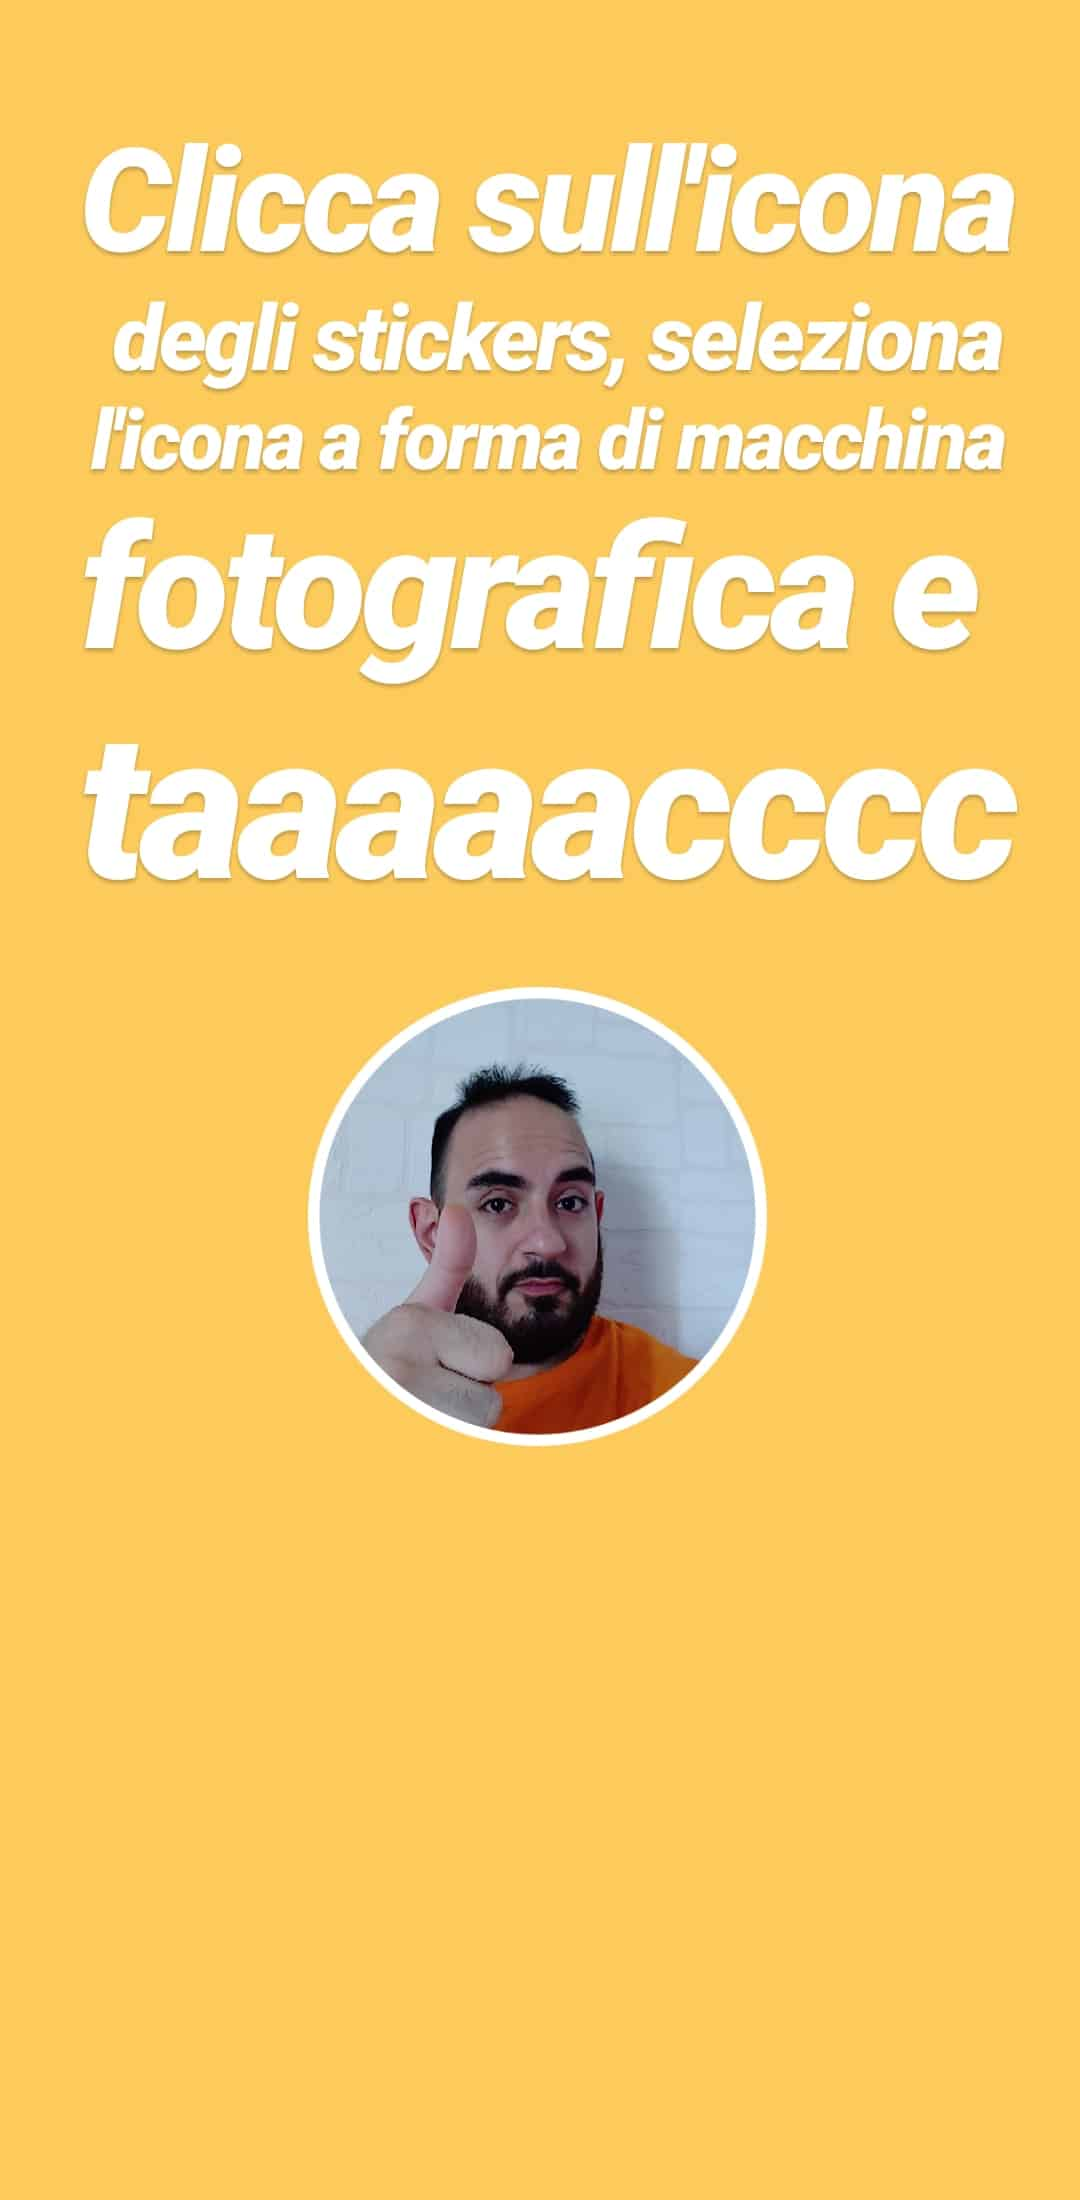 creare stickers instagram